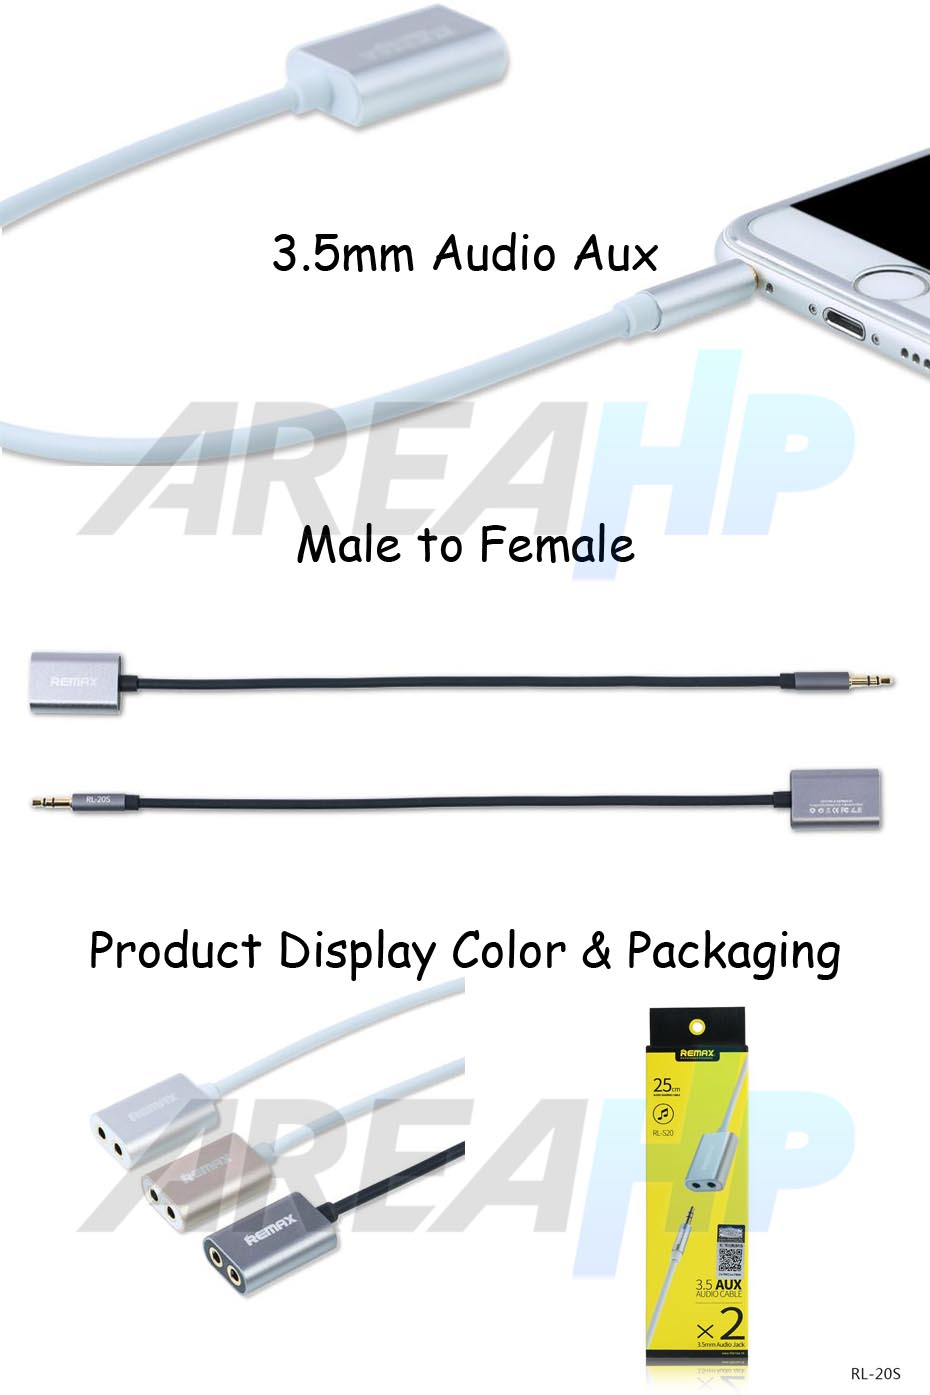 Remax Share 3.5mm Audio Aux Male to Female Jack Cable RL-20S Overview